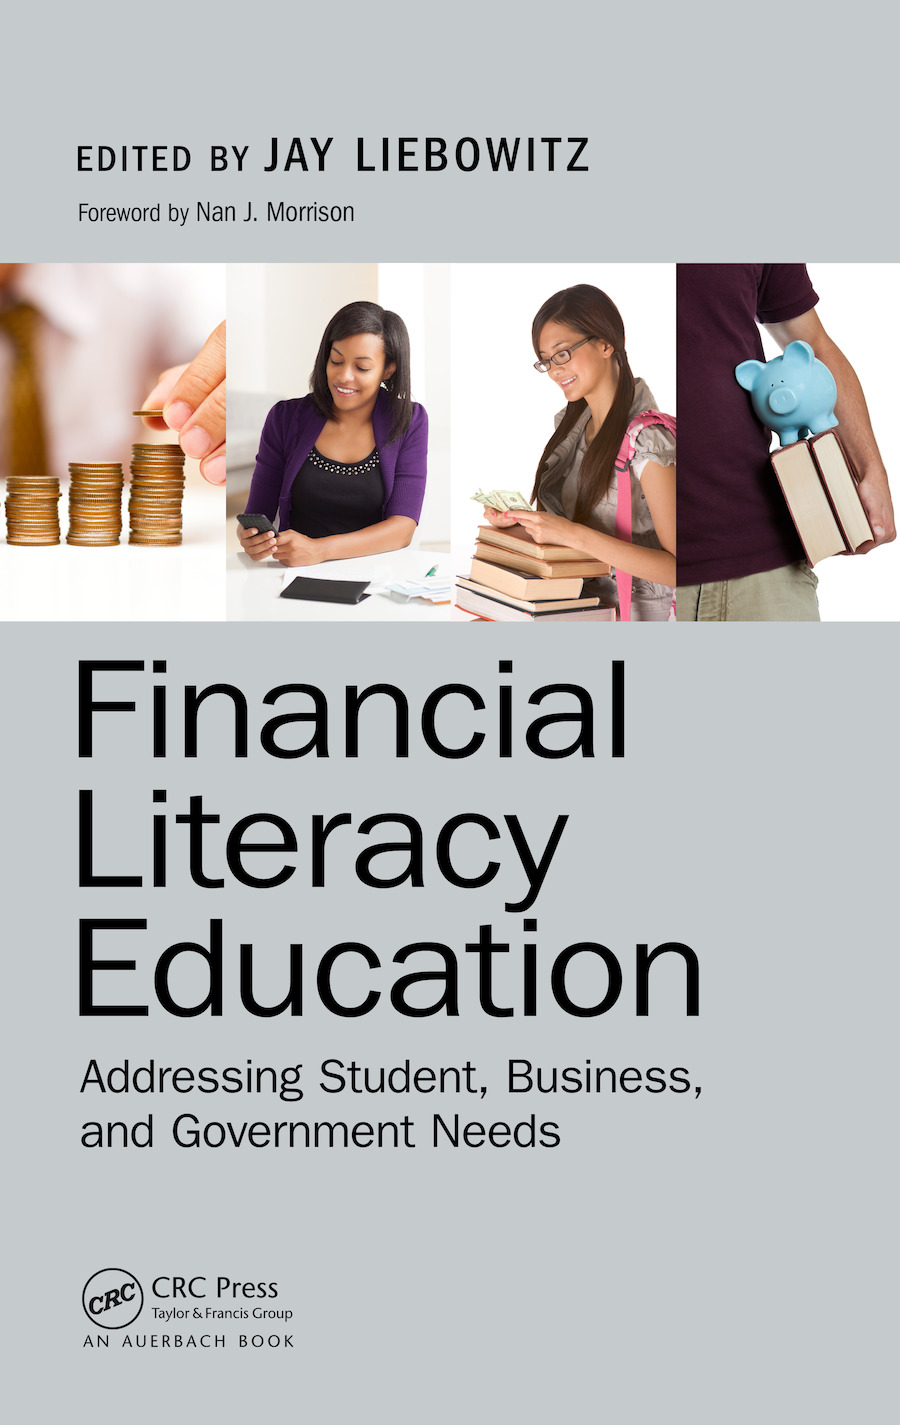 Financial Literacy Education: Addressing Student, Business, and Government Needs book cover